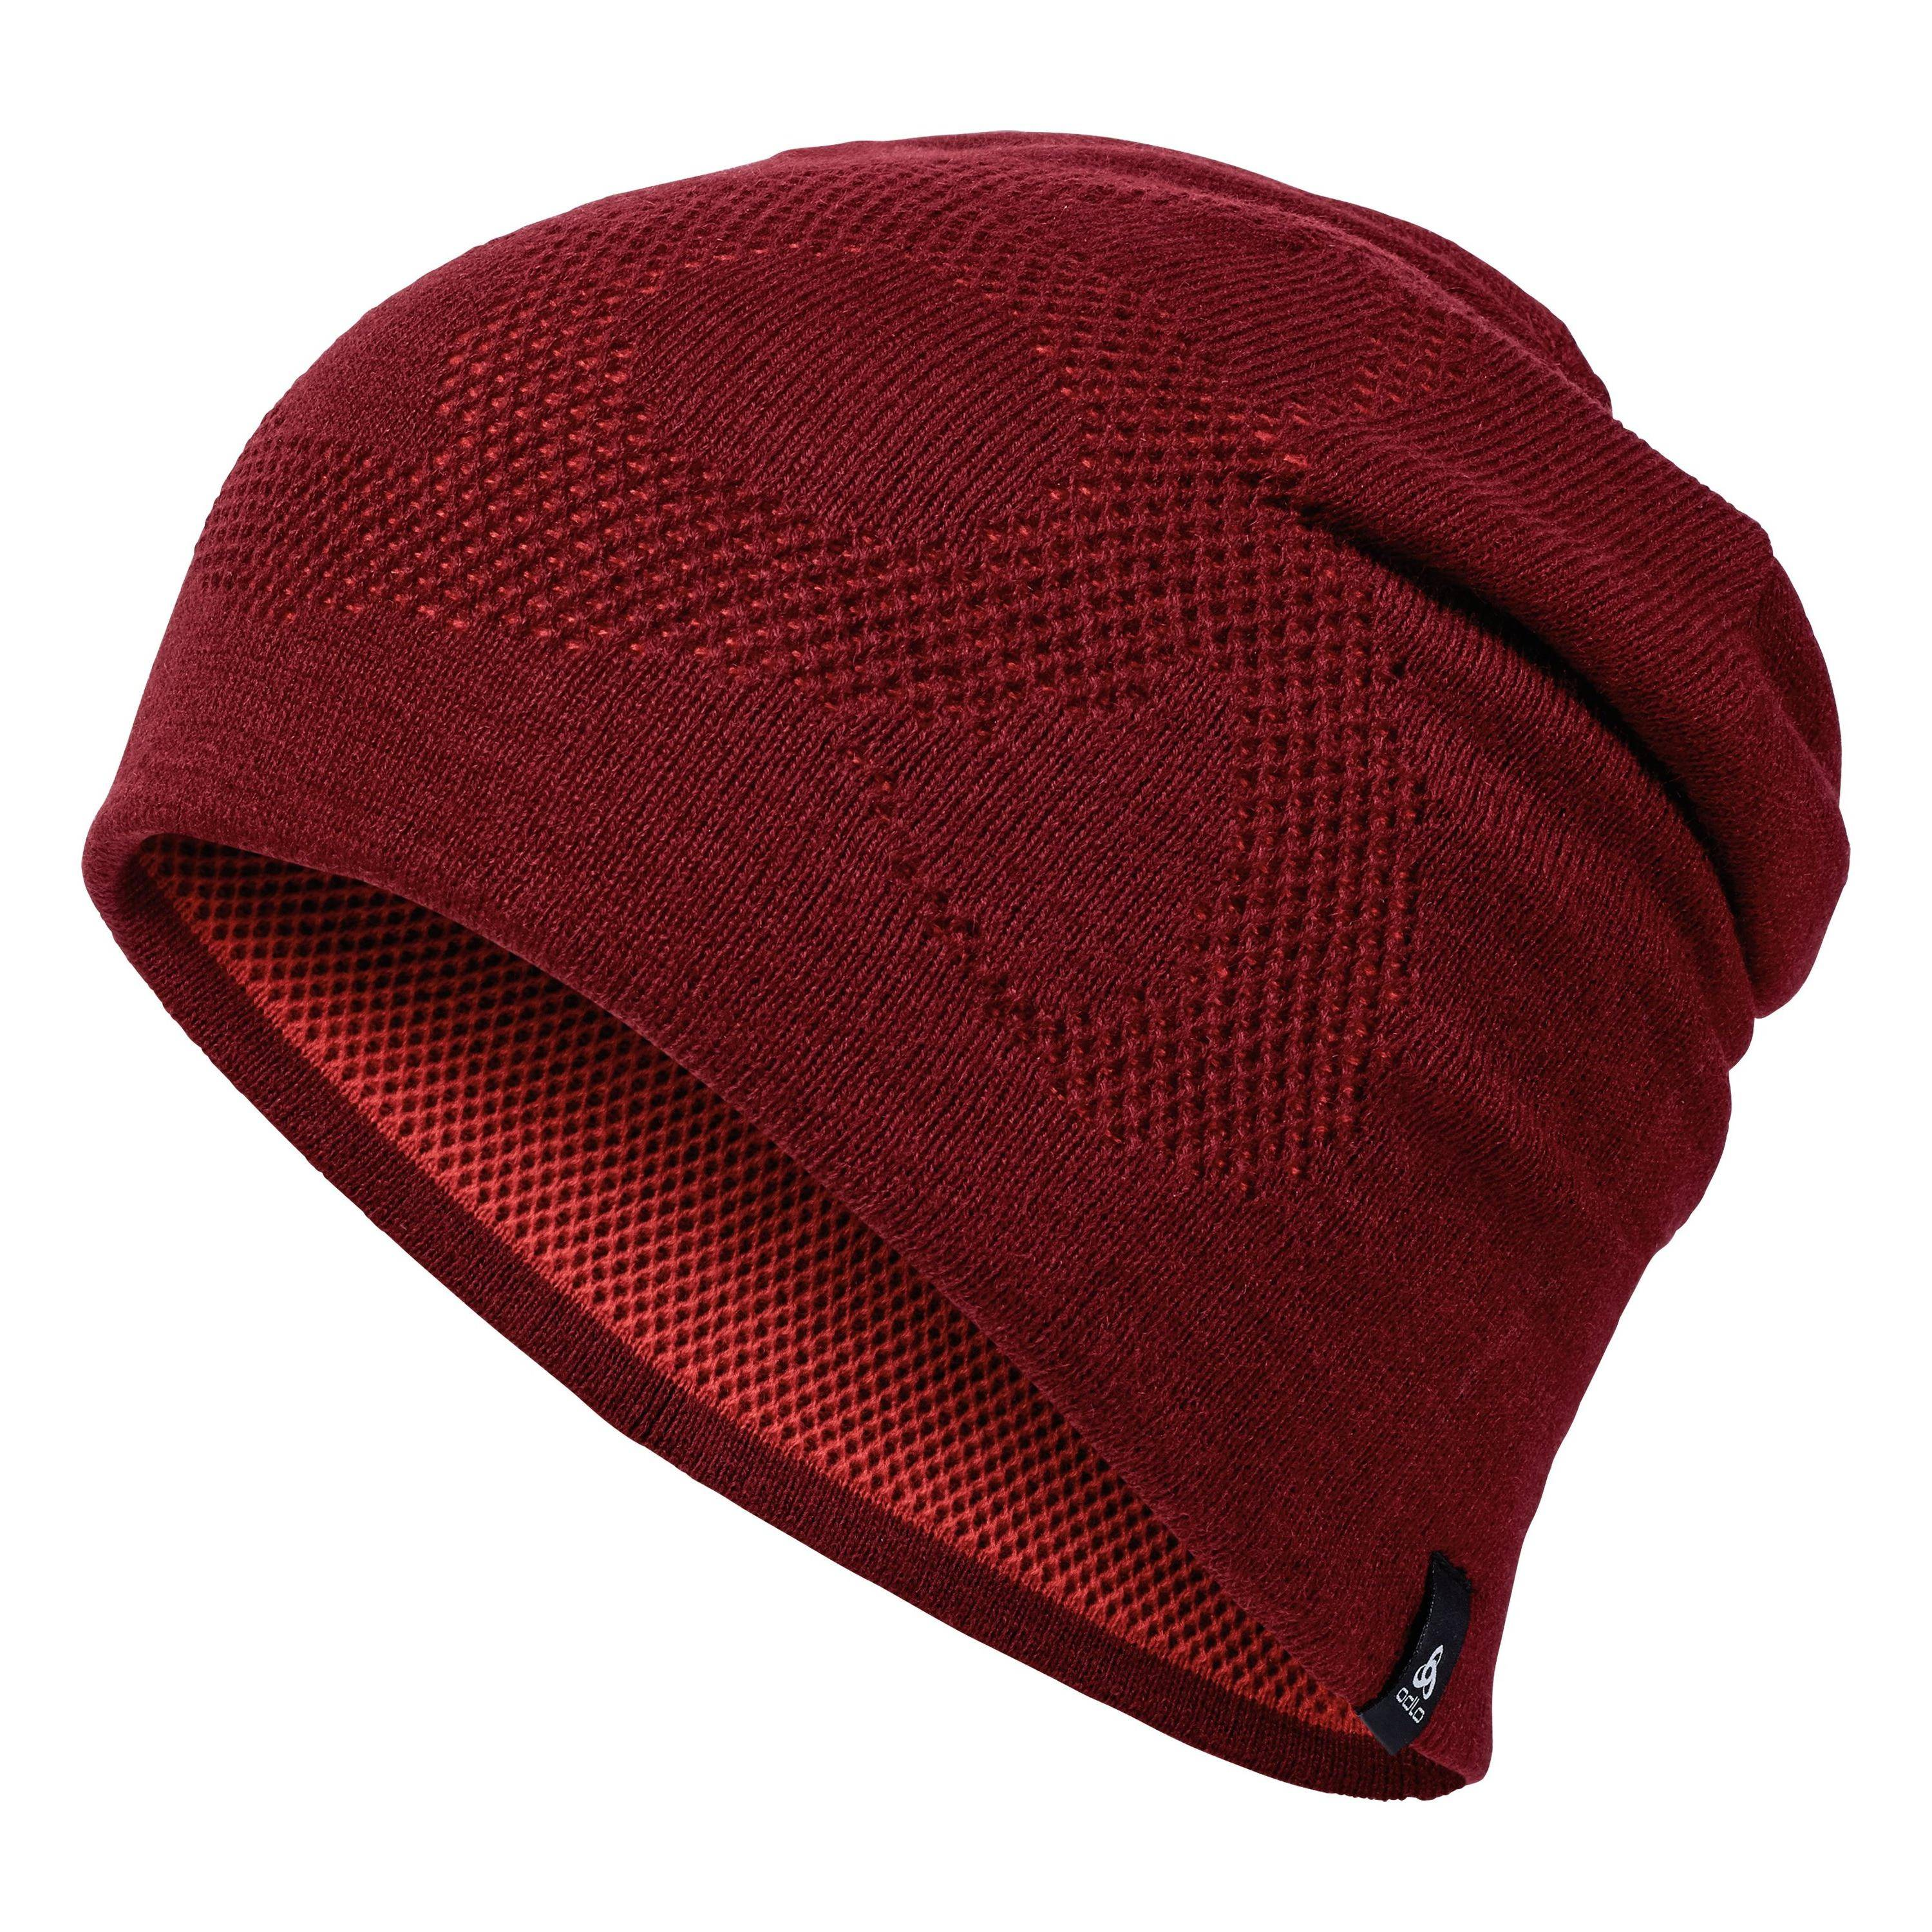 Odlo Hat MID GAGE Reversible Warm One Size